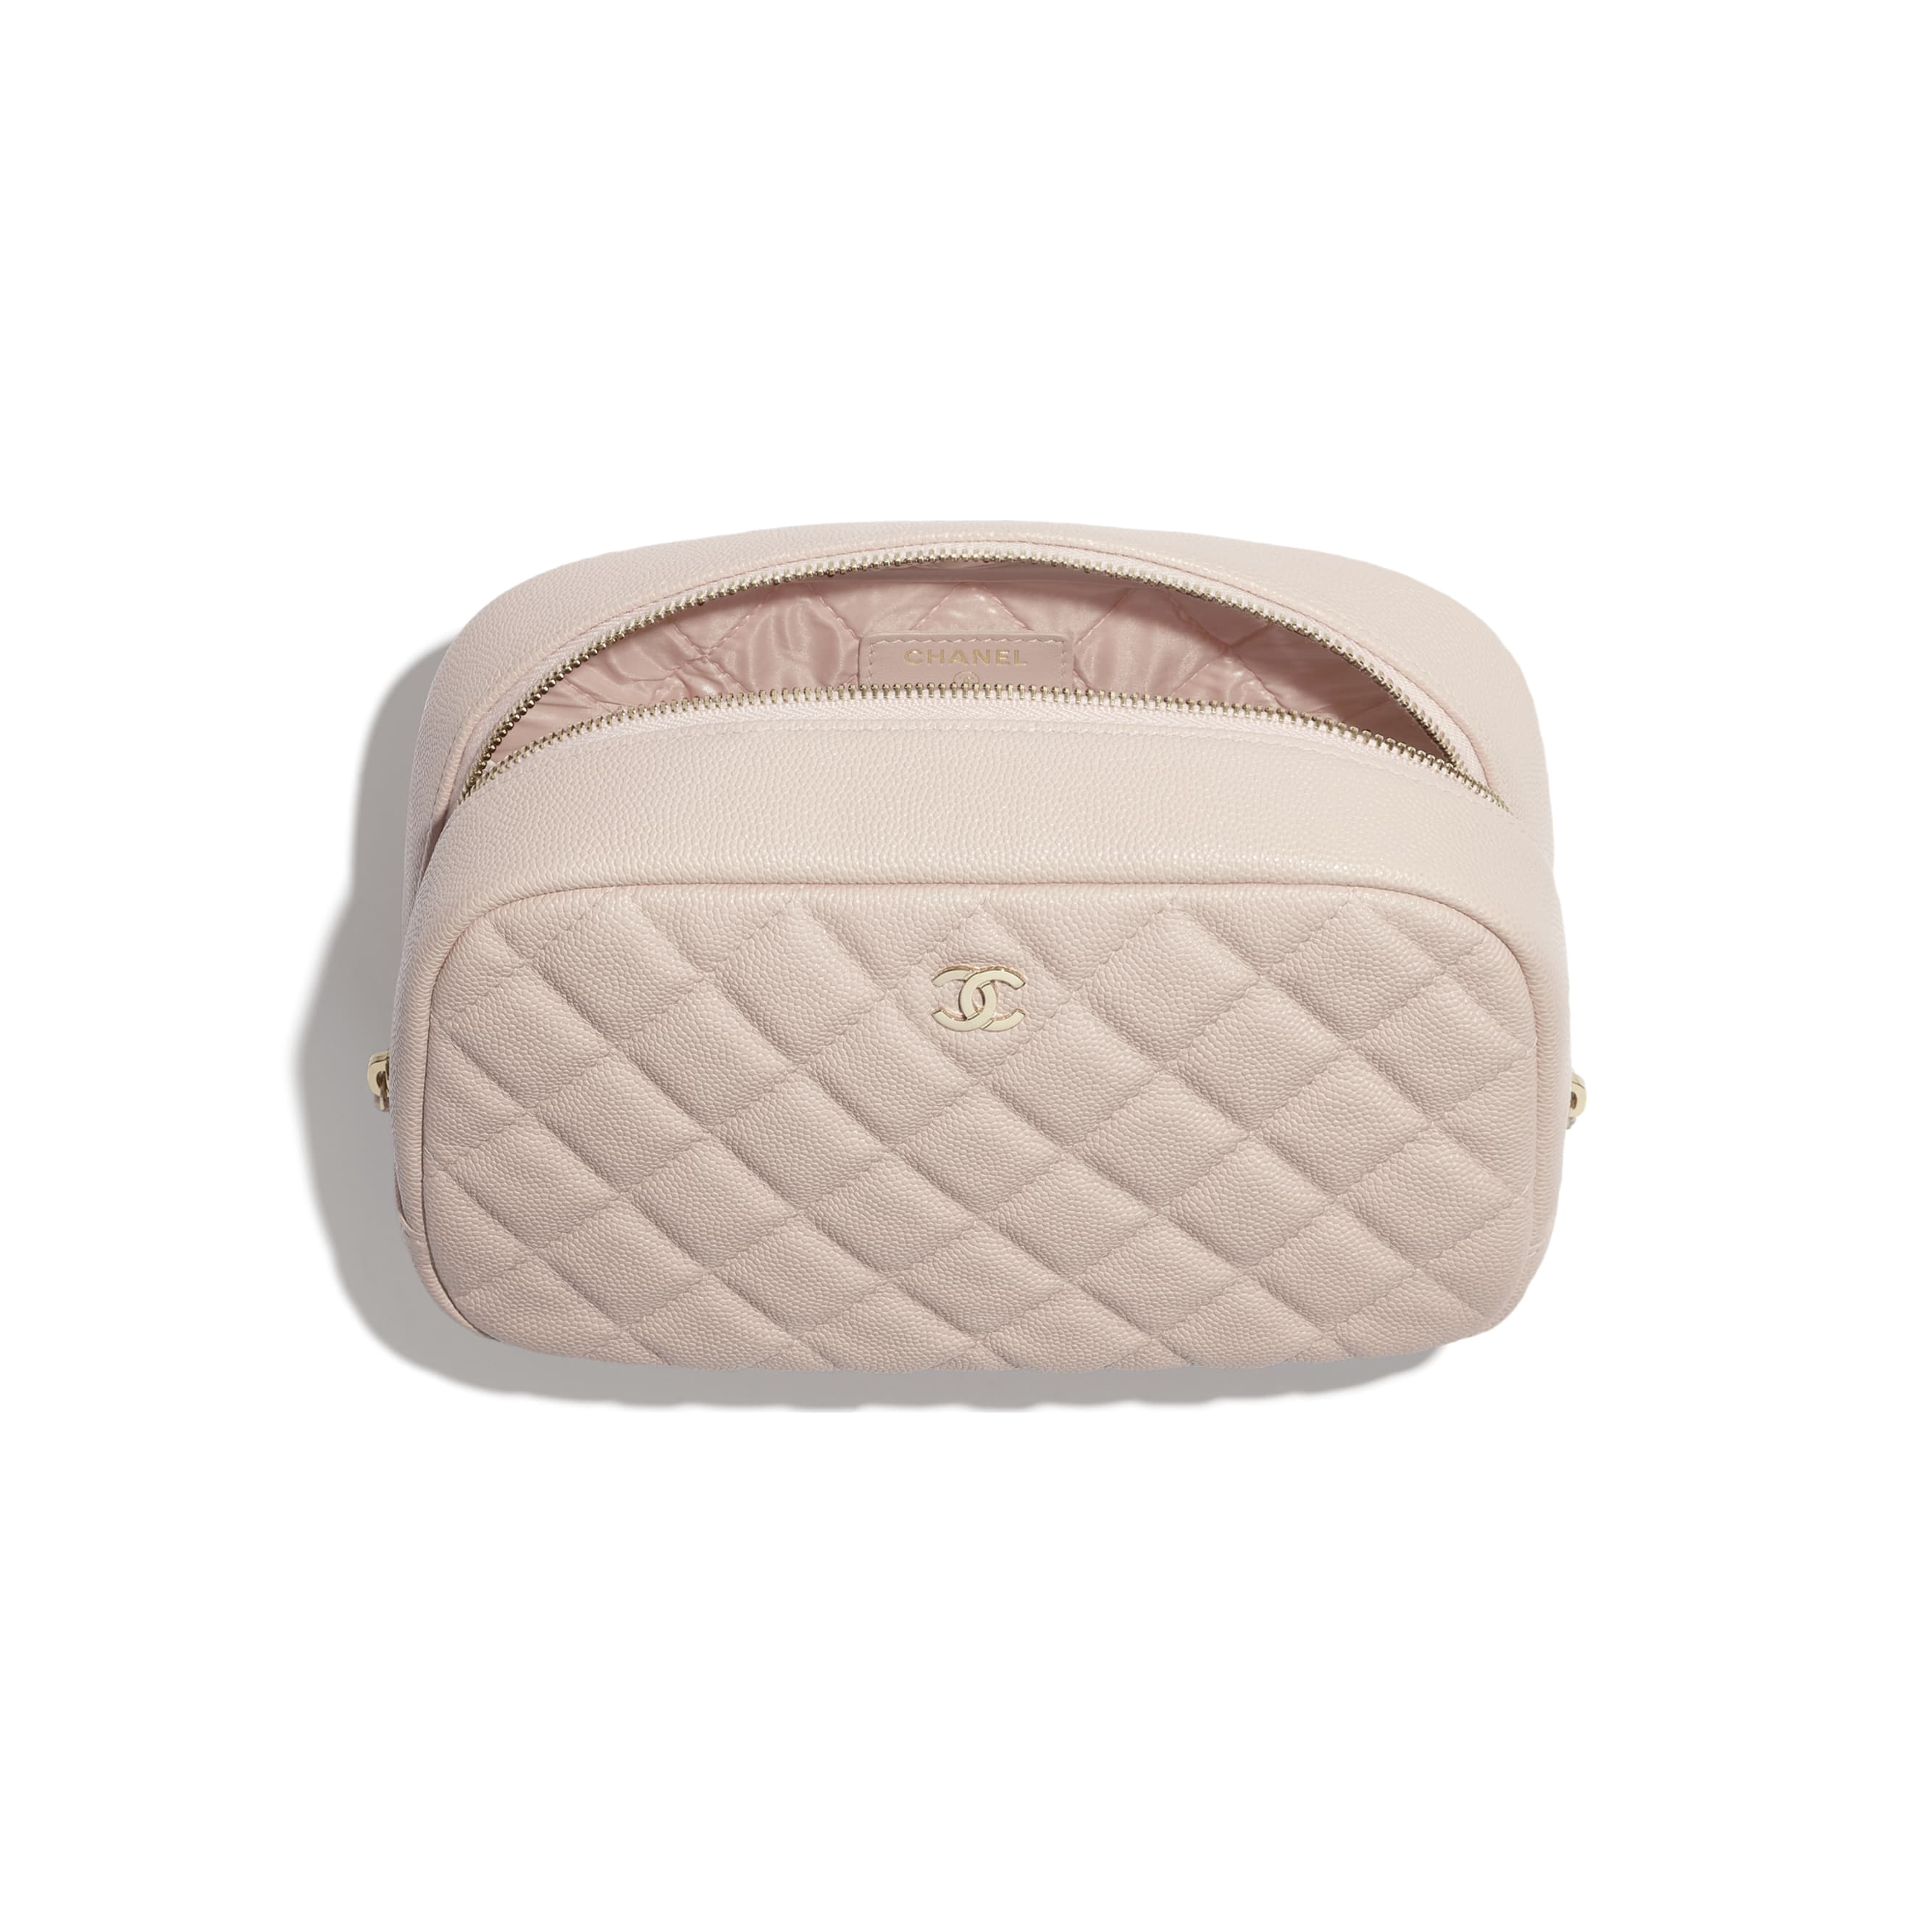 Classic Case - Pale Pink - Grained Calfskin & Gold-Tone Metal - CHANEL - Alternative view - see standard sized version